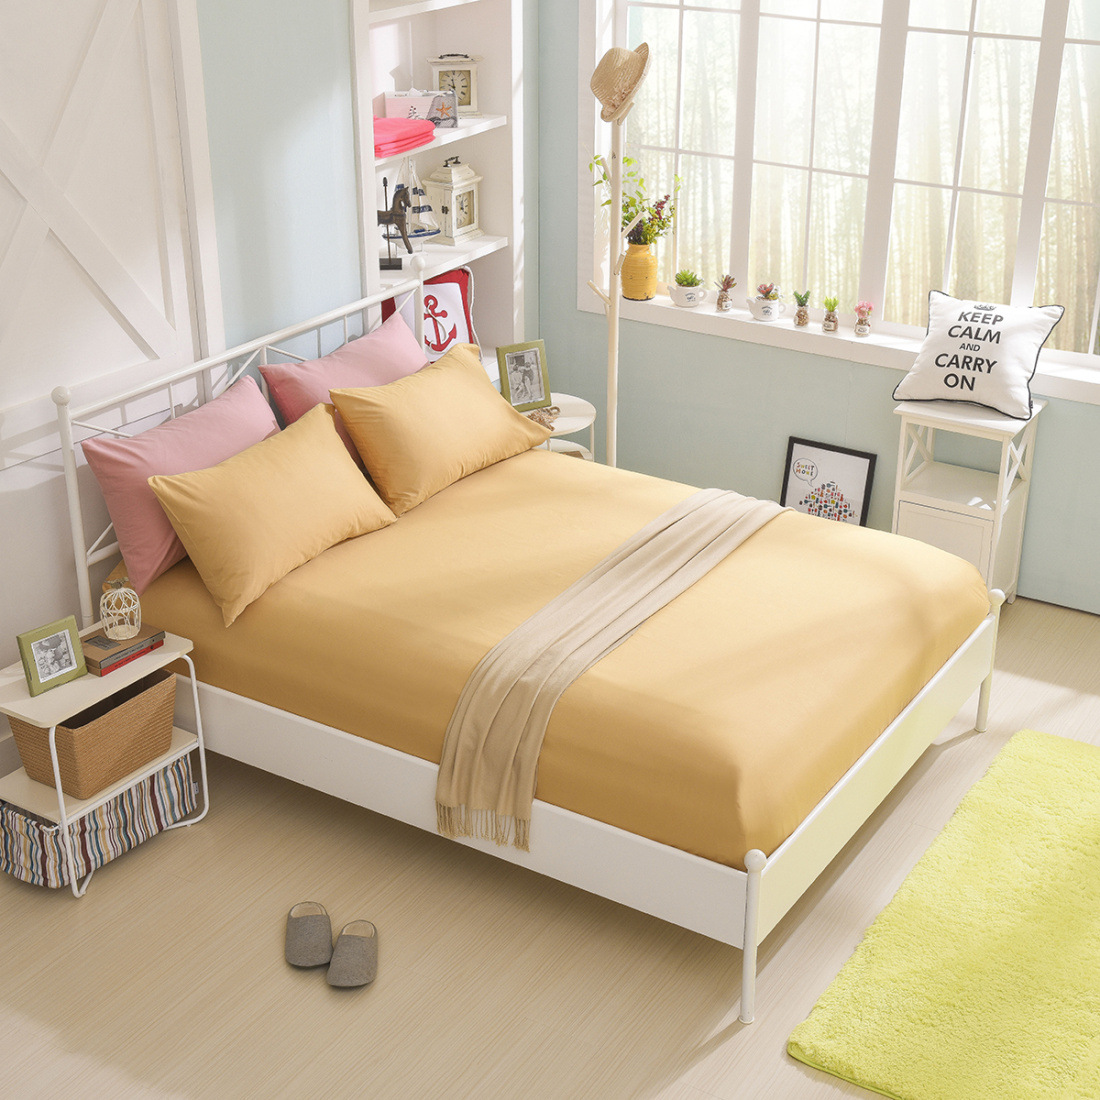 High Quality Cotton Solid Color Mattress Protector with Elastic Non slip Mattress Cover Pad Baby Fitted Sheet Protection in Mattress Covers Grippers from Home Garden